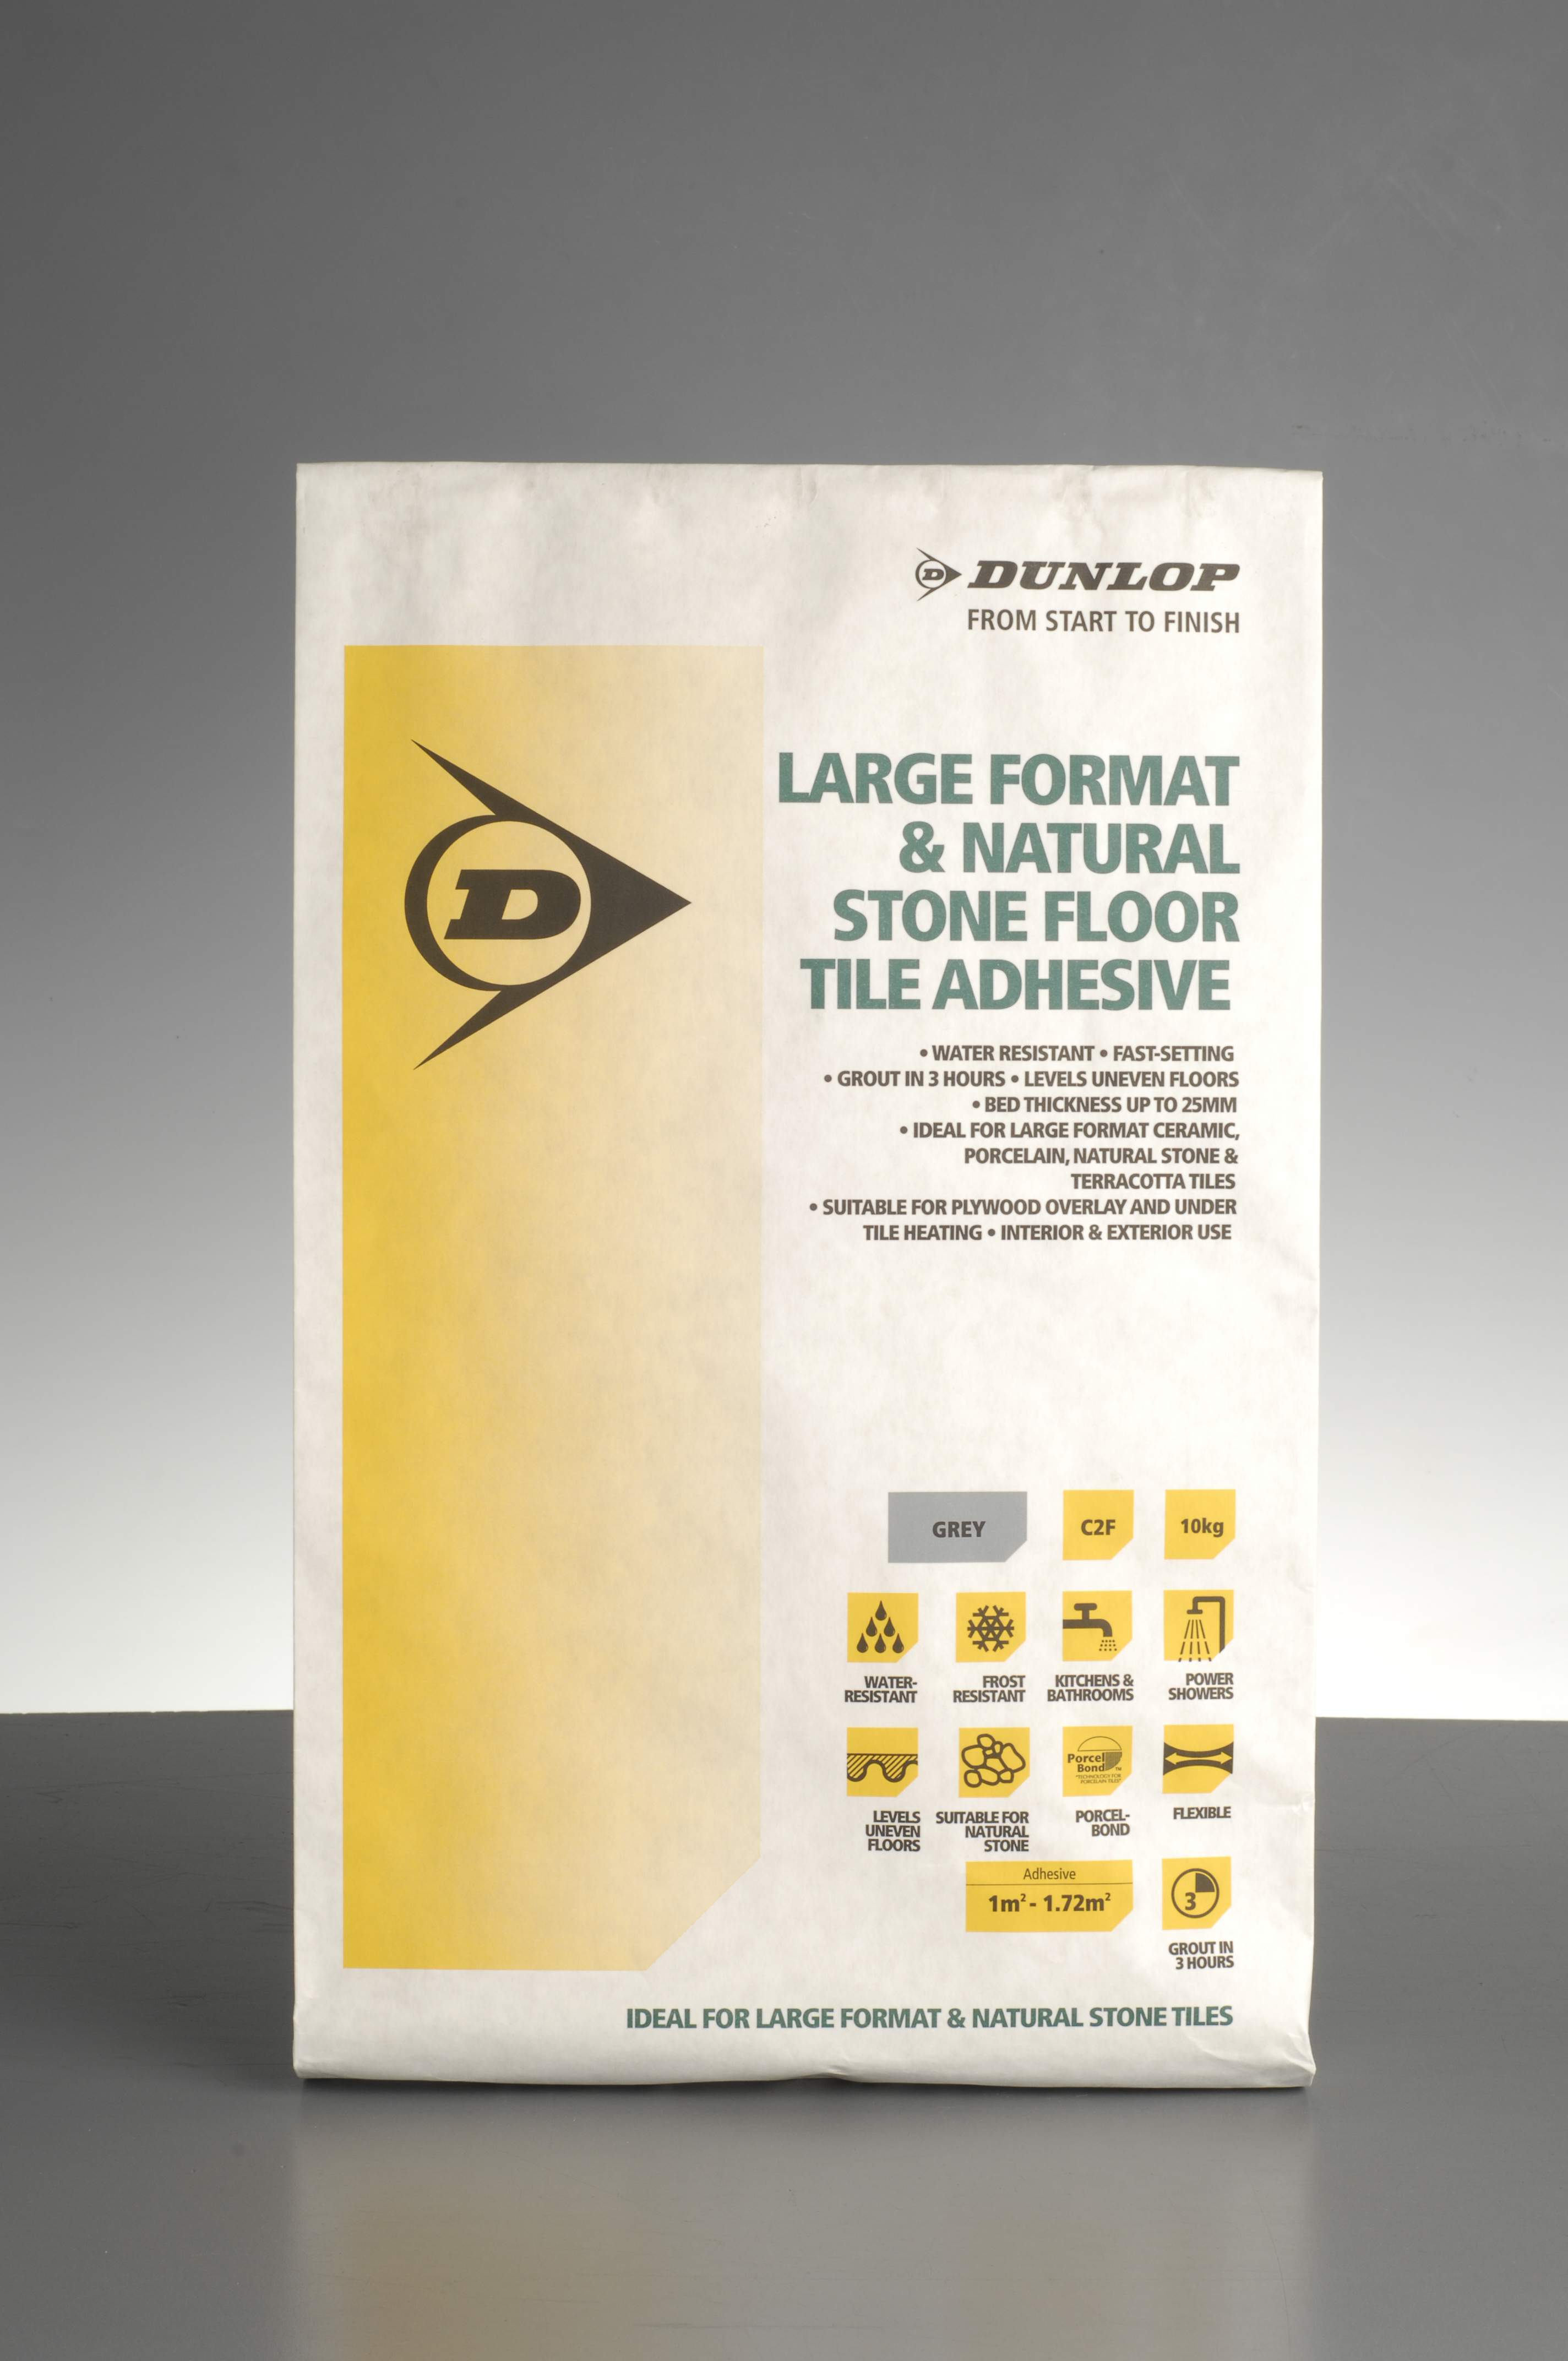 In the last few years, Dunlop has noticed a significant increase in sales of its Large Format and Natural Stone Adhesive.